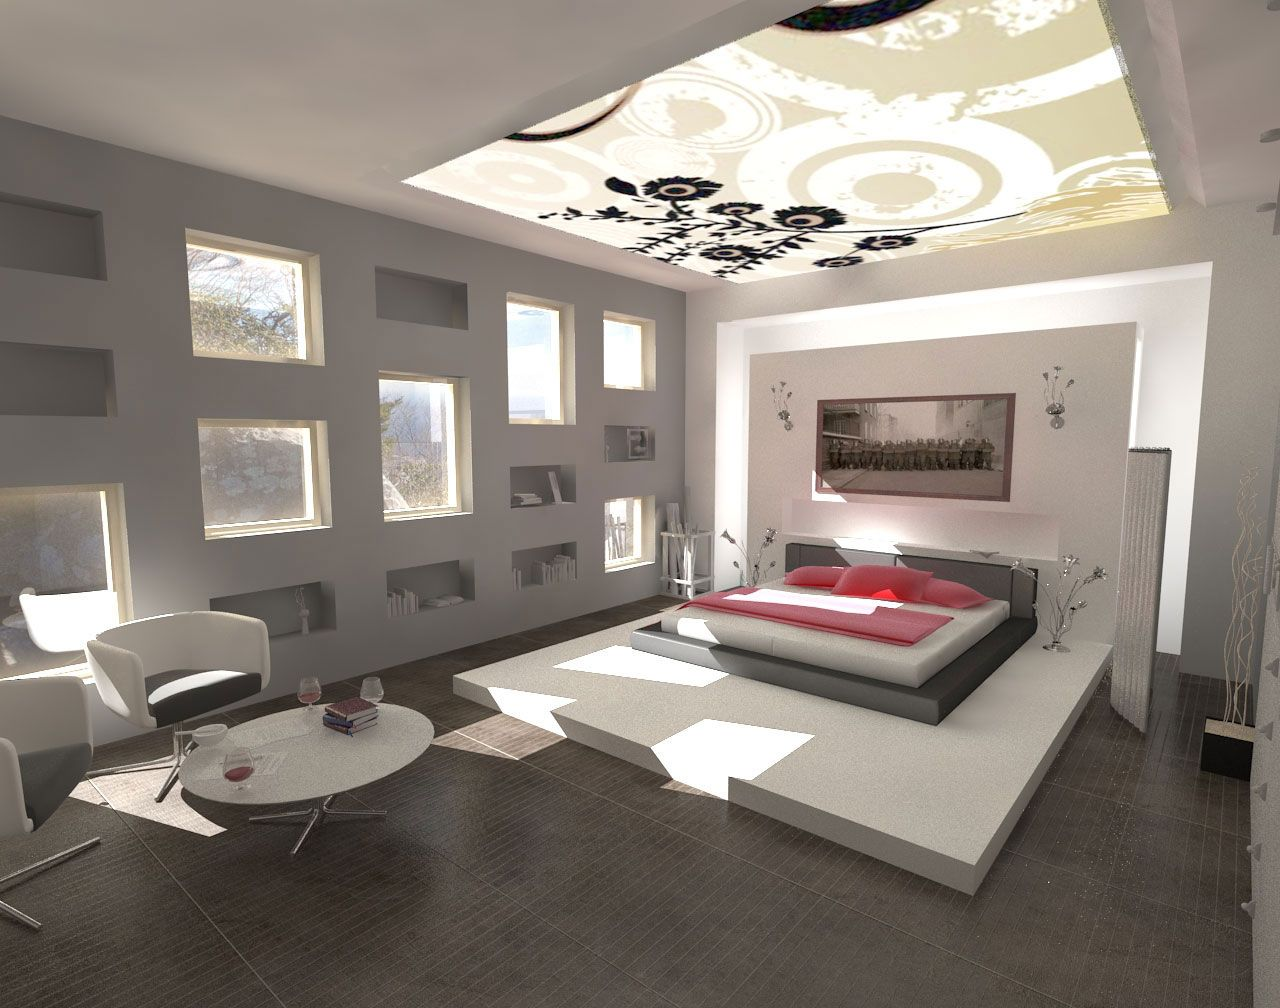 Room Interior Design Ideas Interior Design For Living Room